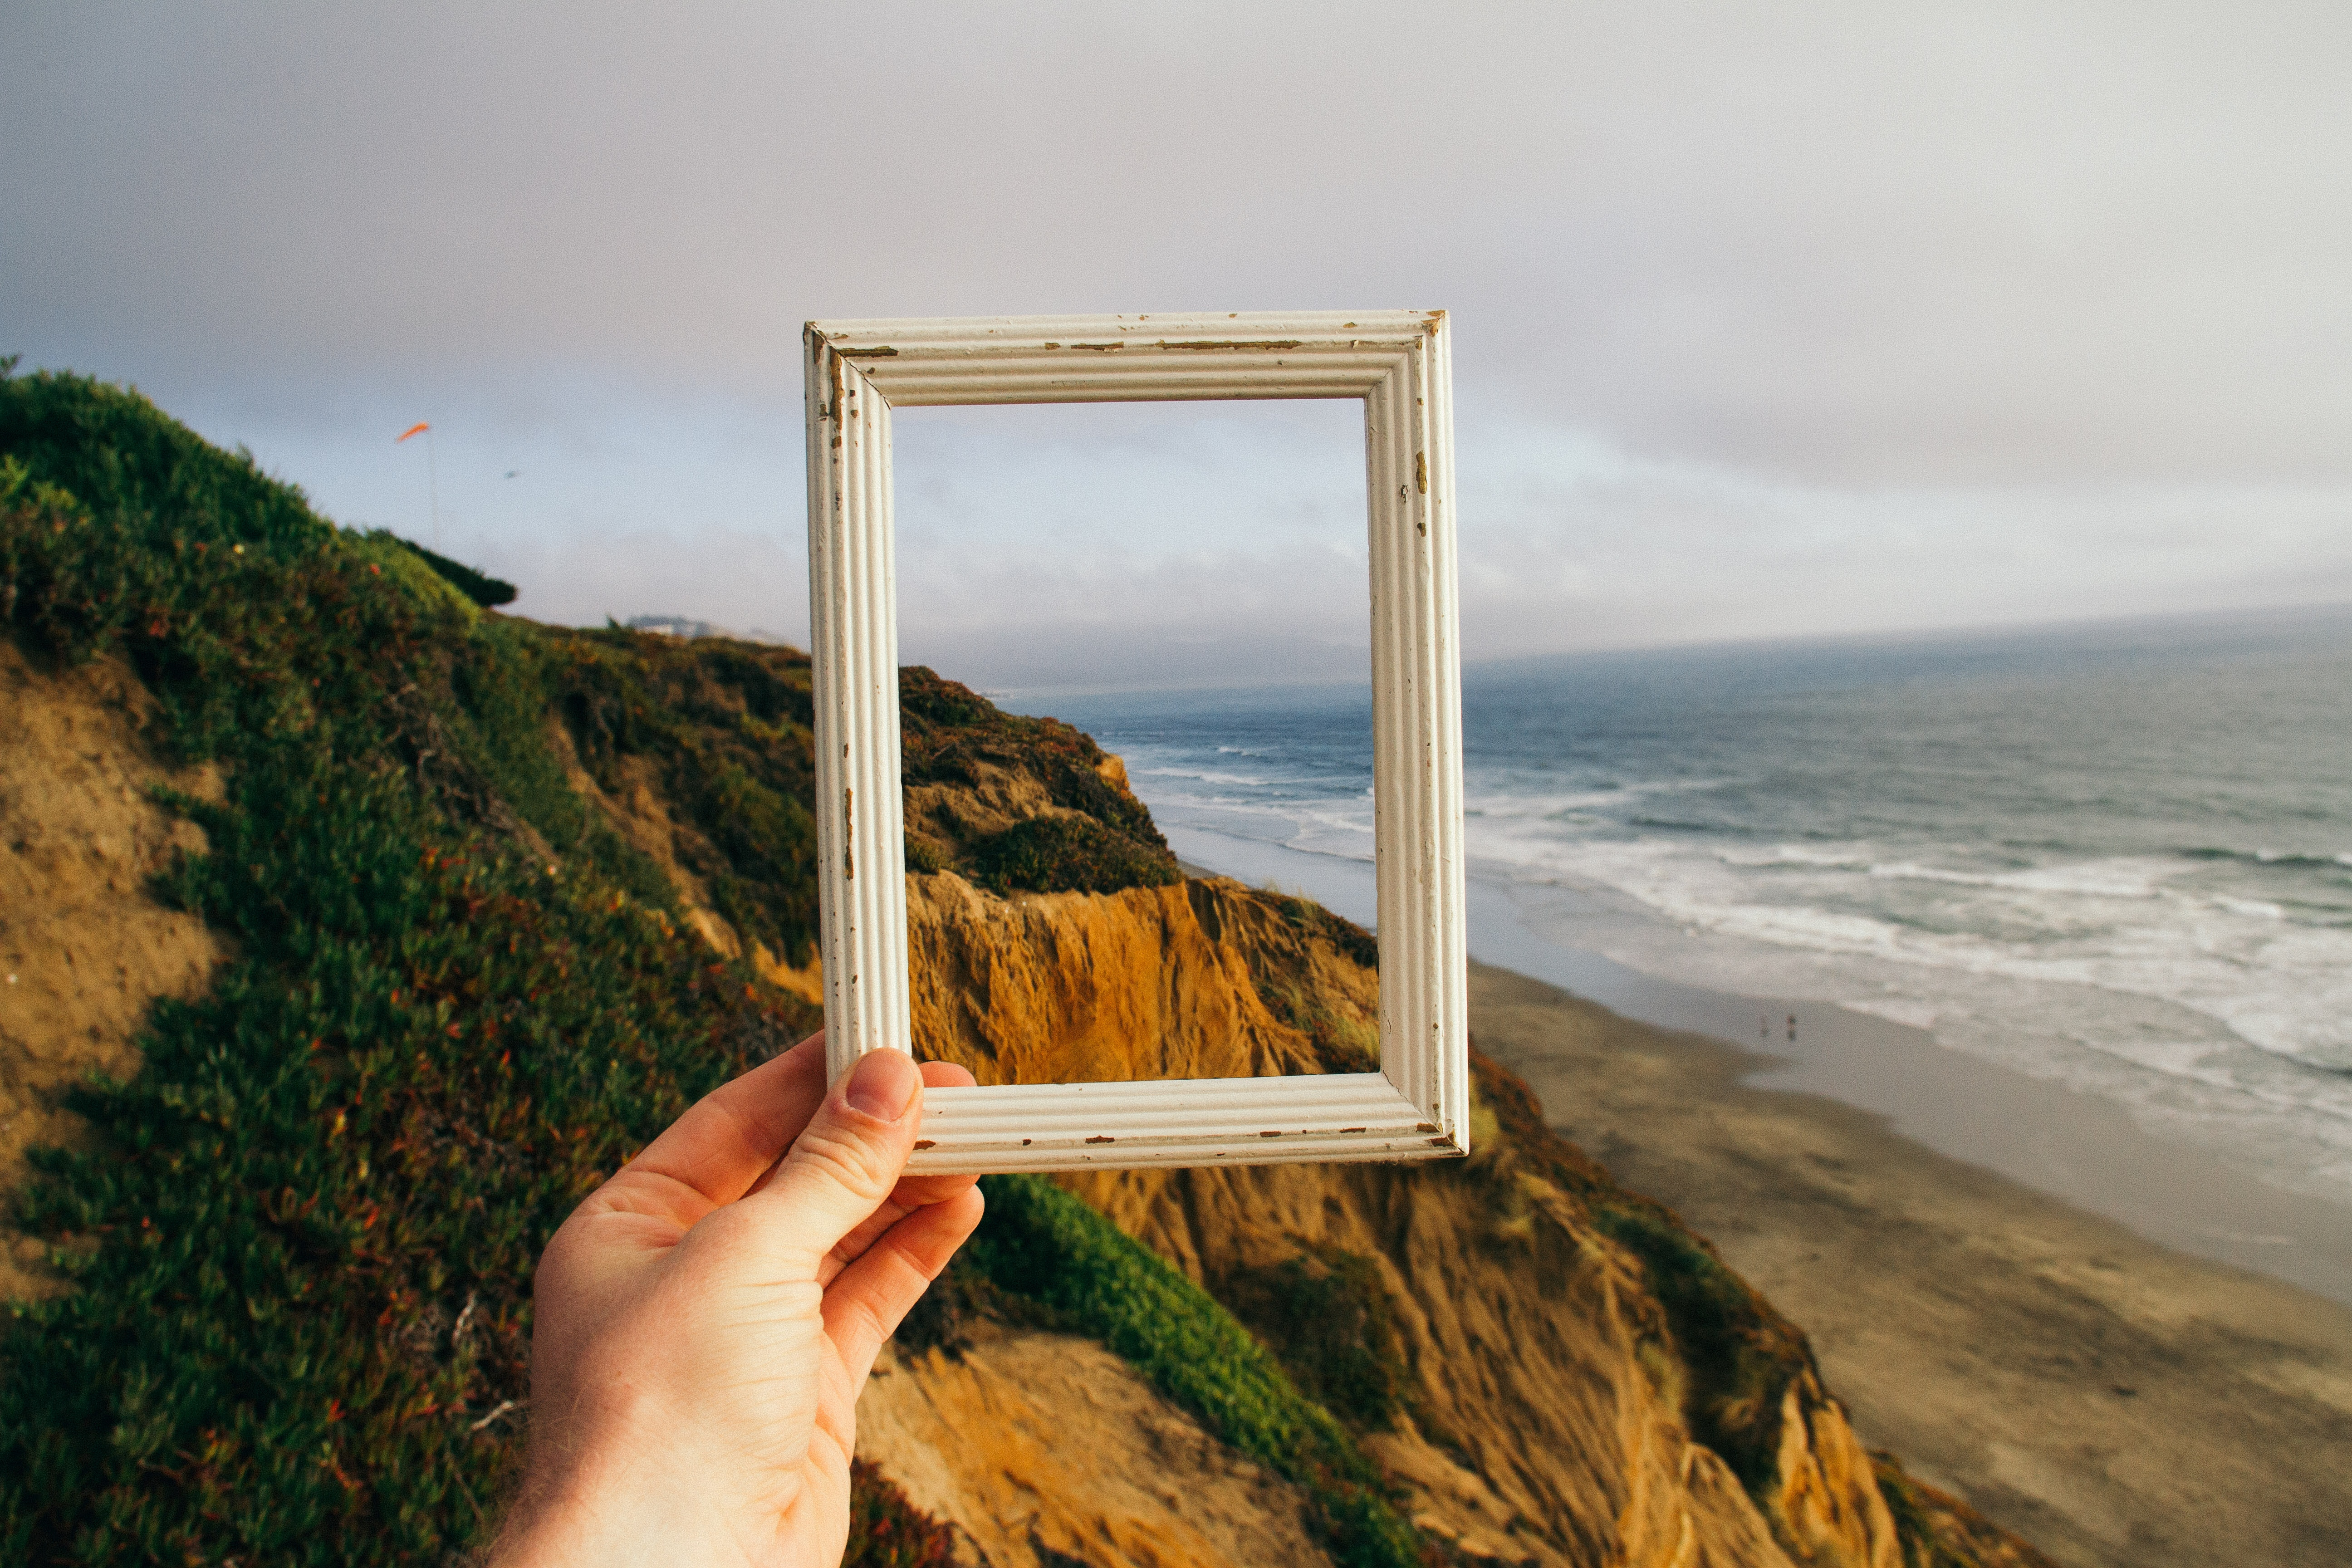 frame in front of landscape